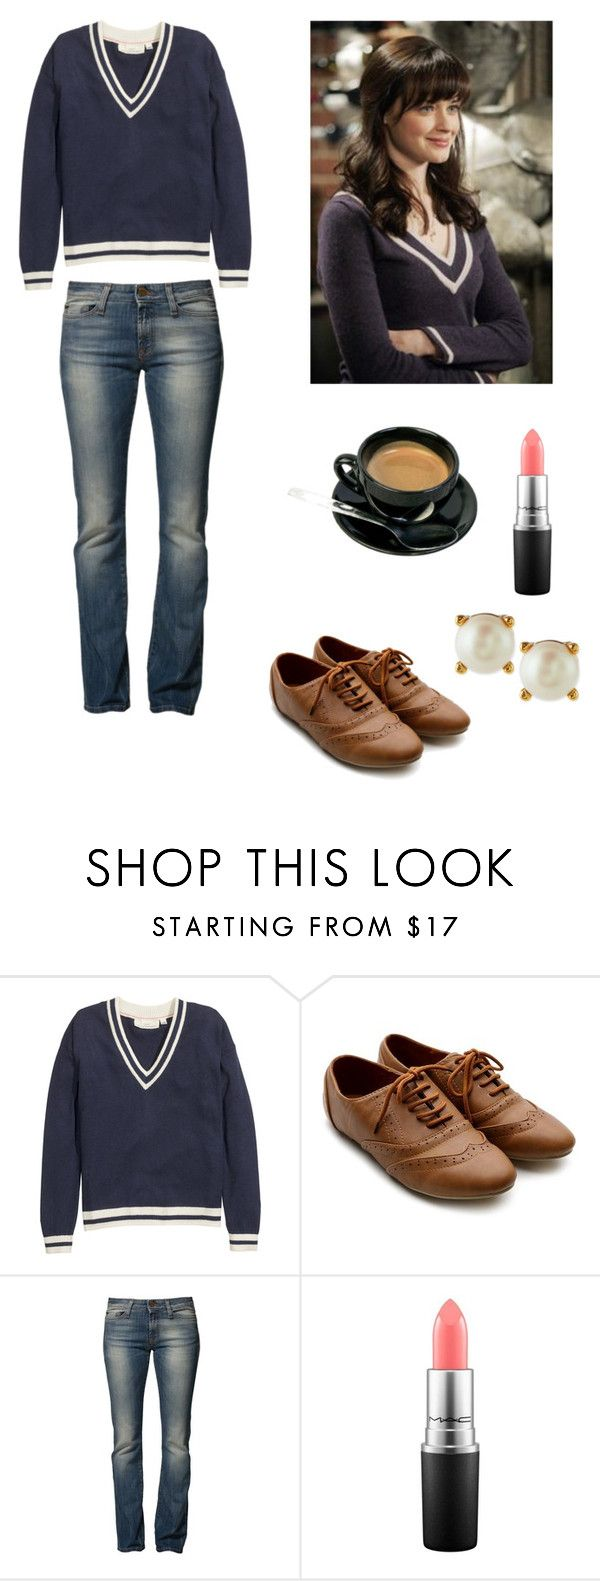 Rory Gilmore by class-and-style ❤ liked on Polyvore featuring HM, Ollio, Miss Sixty, MAC Cosmetics and Kate Spade